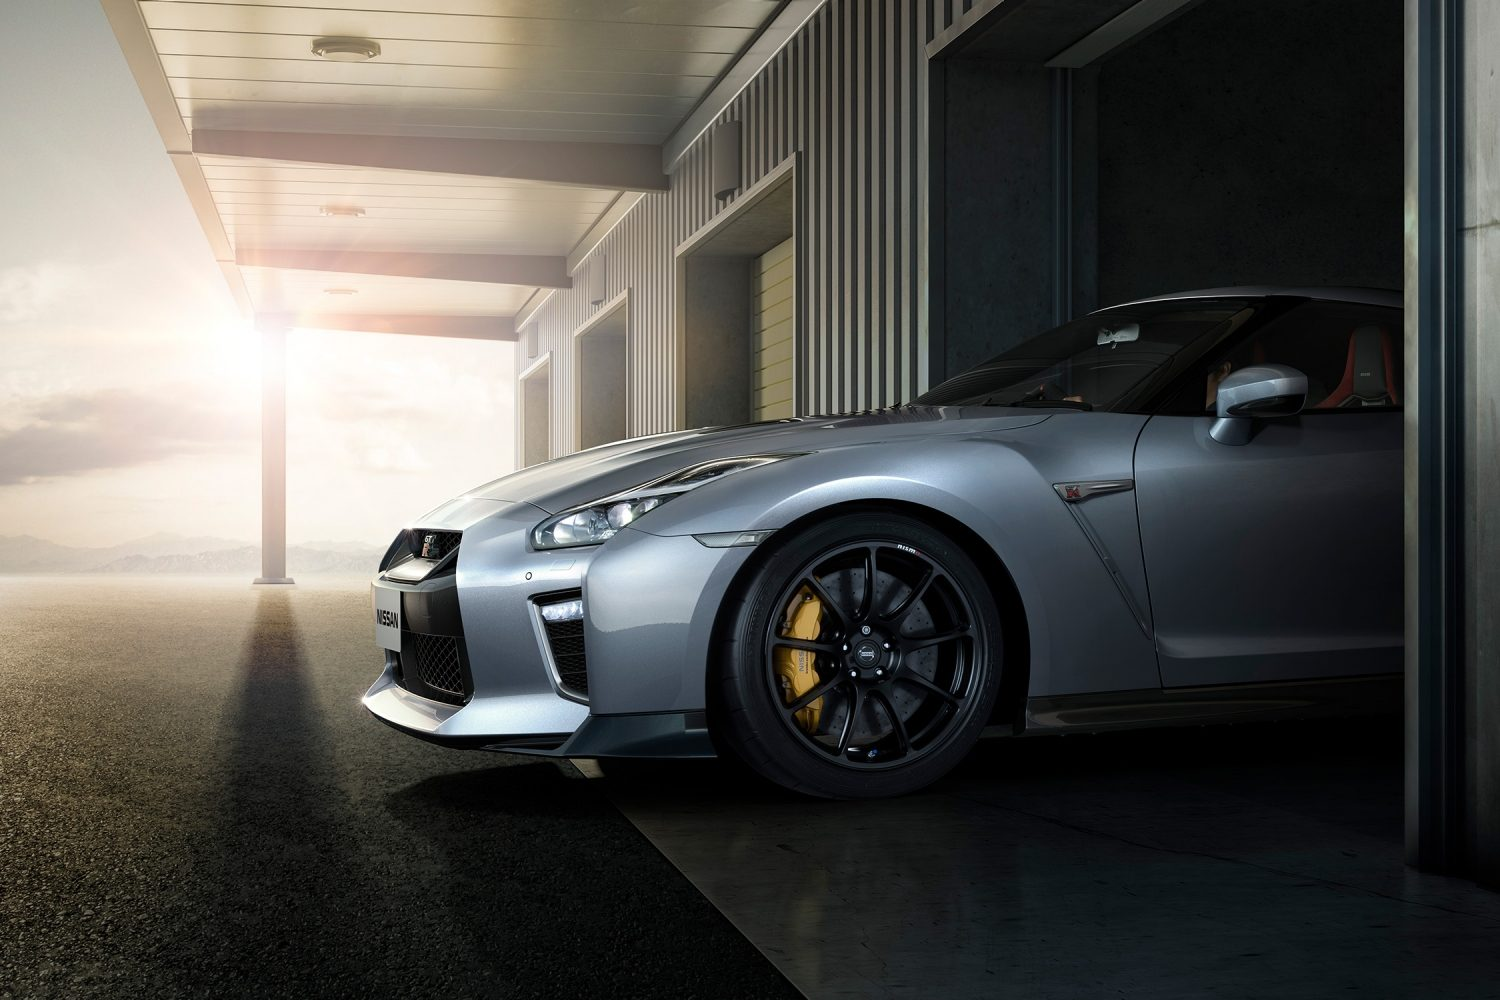 GT-R - THE REAL SECRET OF SPEED